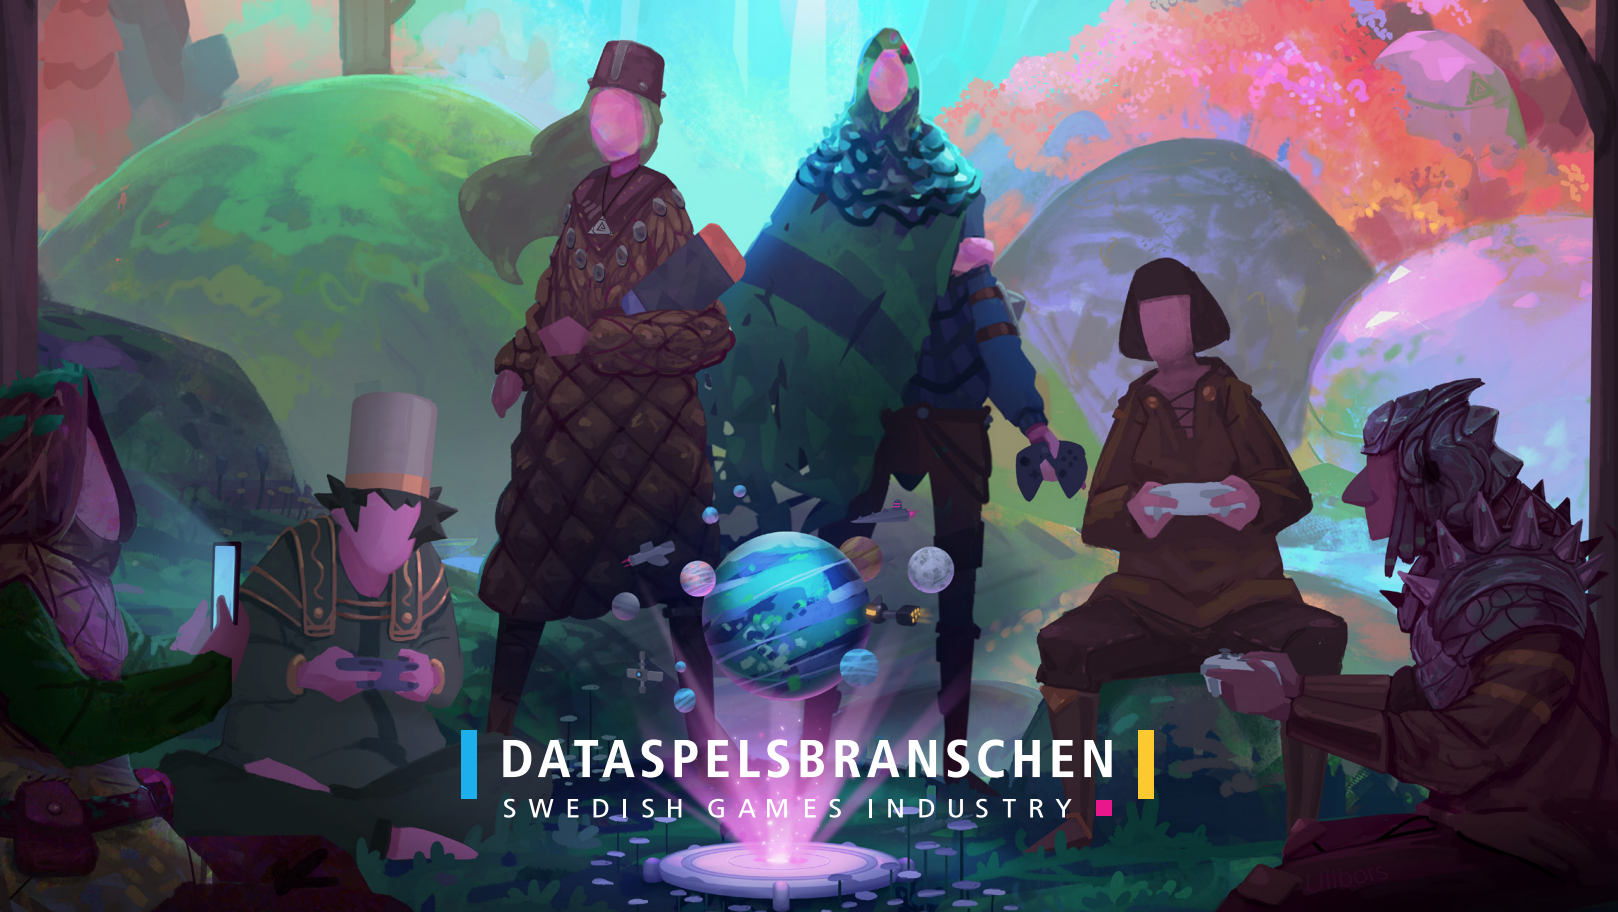 Swedish games industry generated €1.87bn in 2018, employs almost 8,000 people